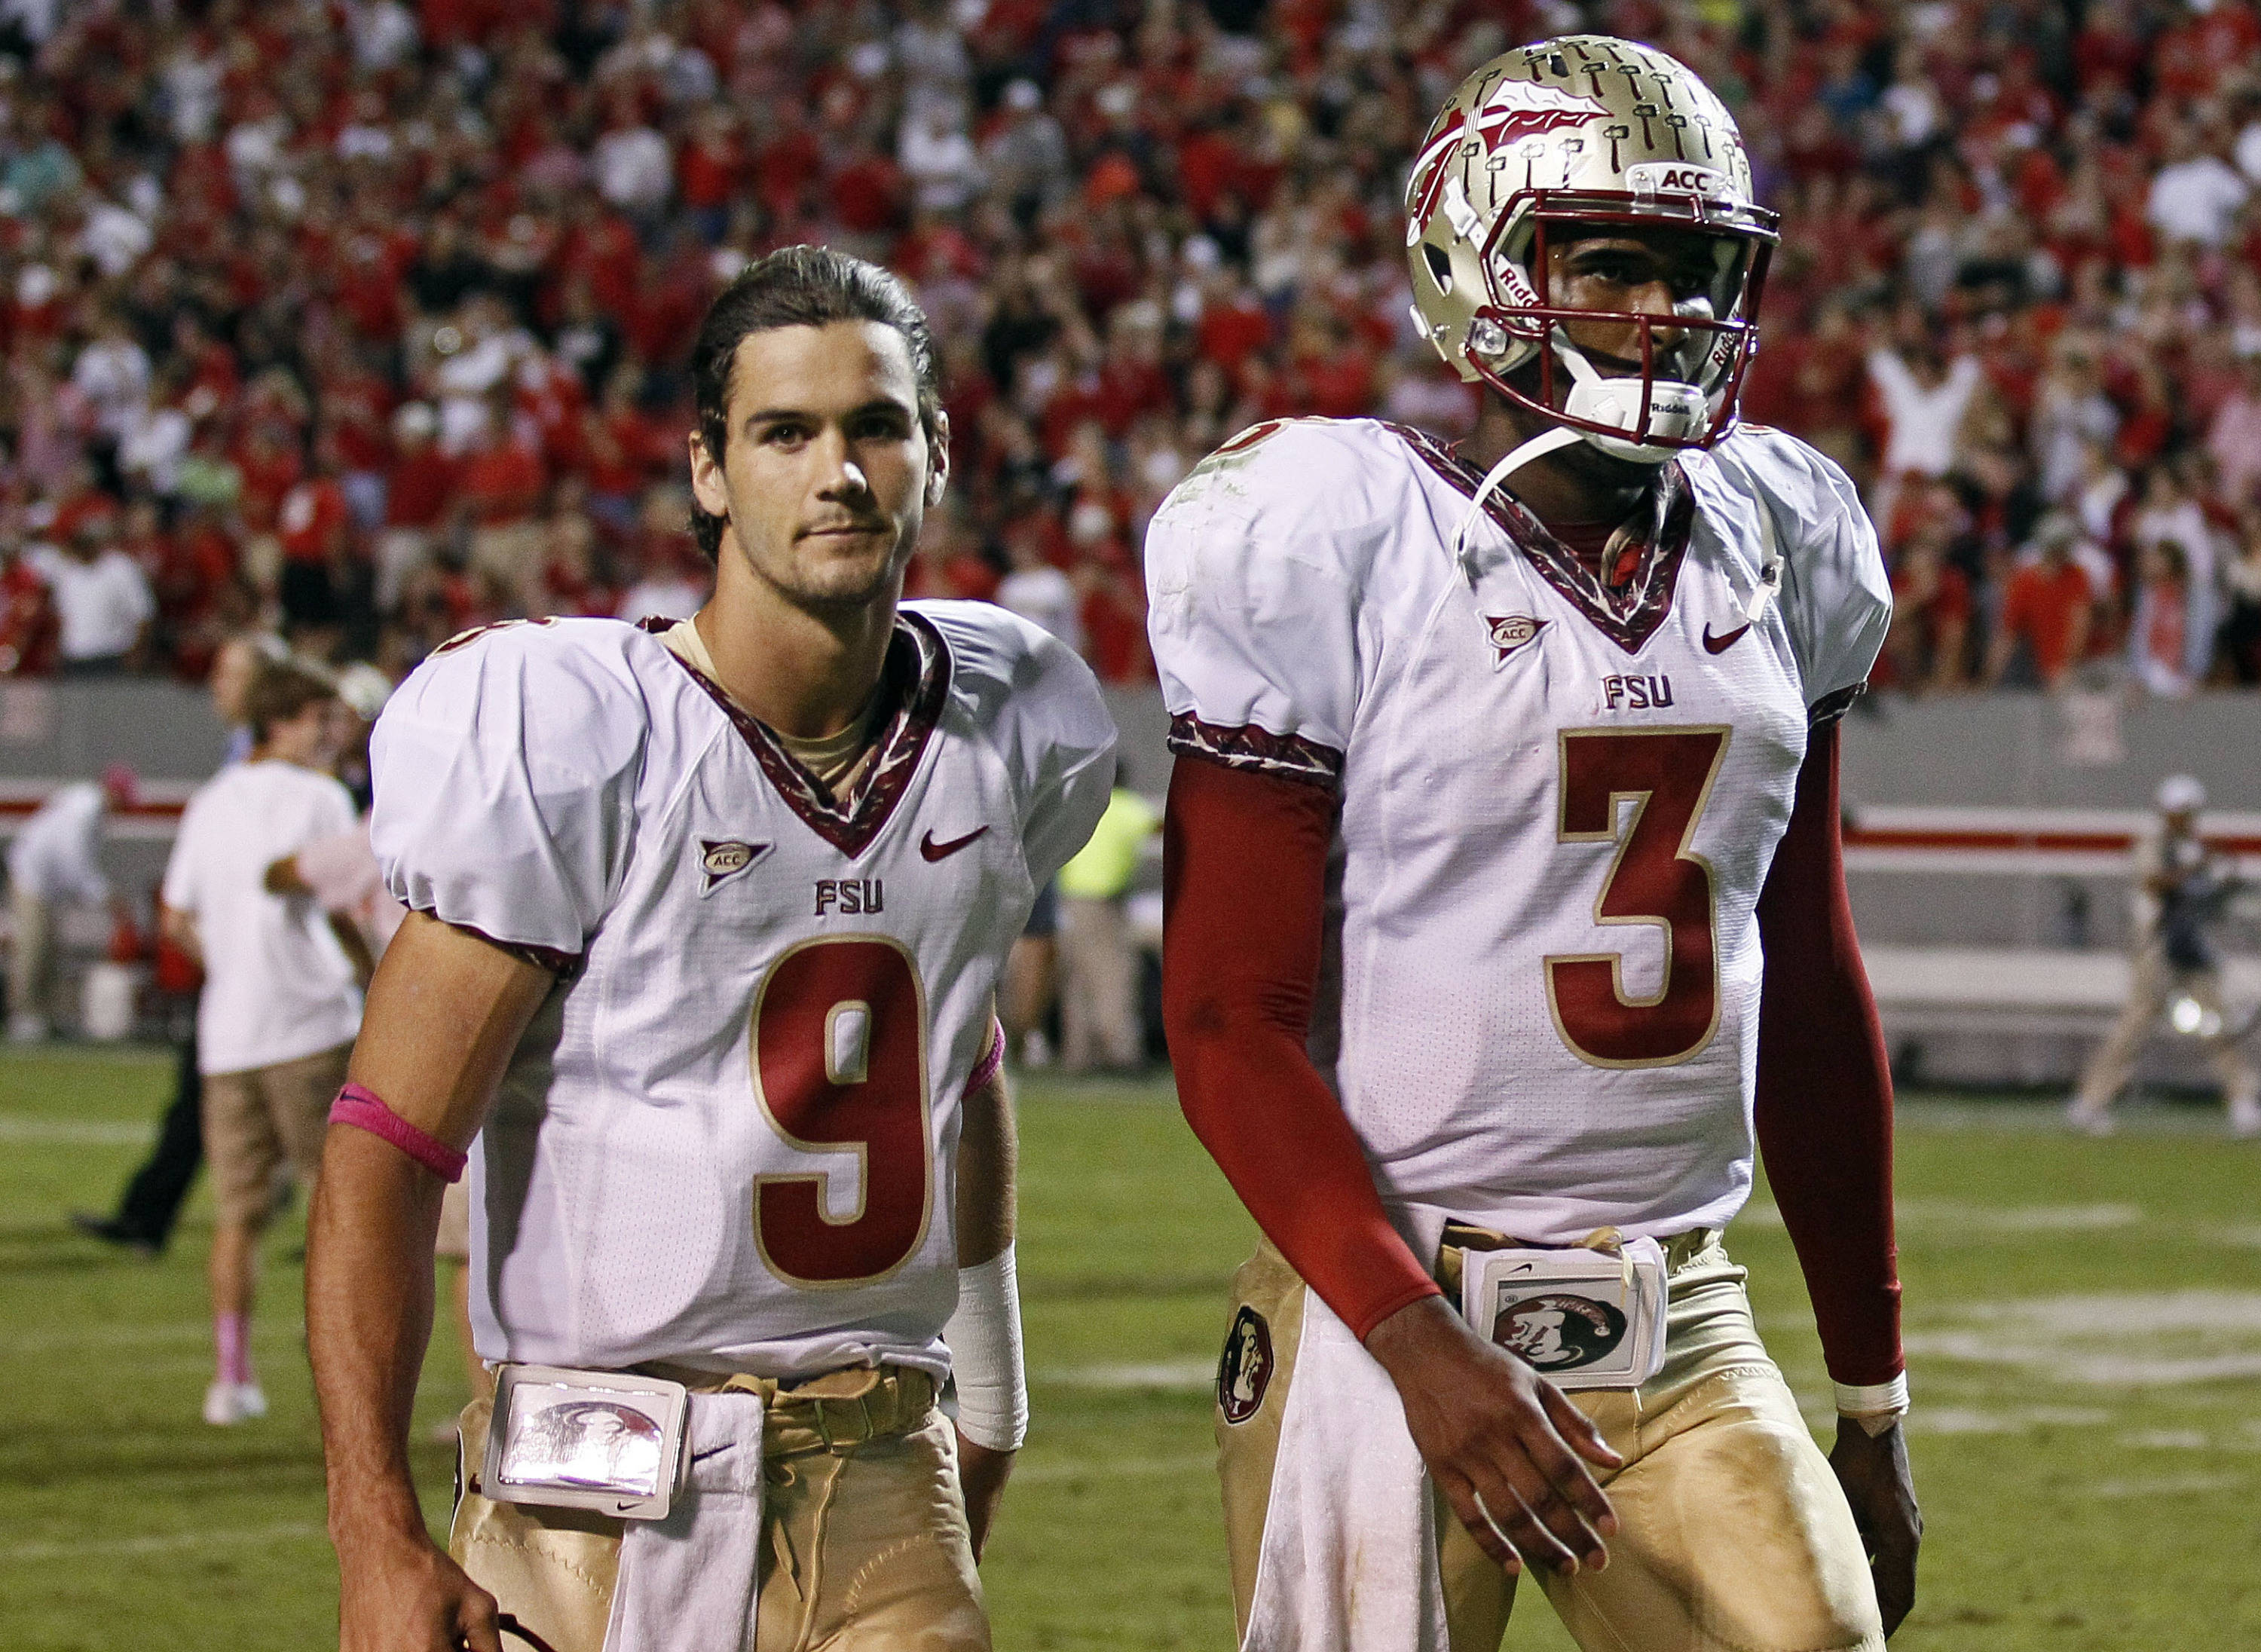 Florida State's Clint Trickett (9) and quarterback EJ Manuel (3) leave the field following Florida State's 17-16 loss to North Carolina State. (AP Photo/Gerry Broome)